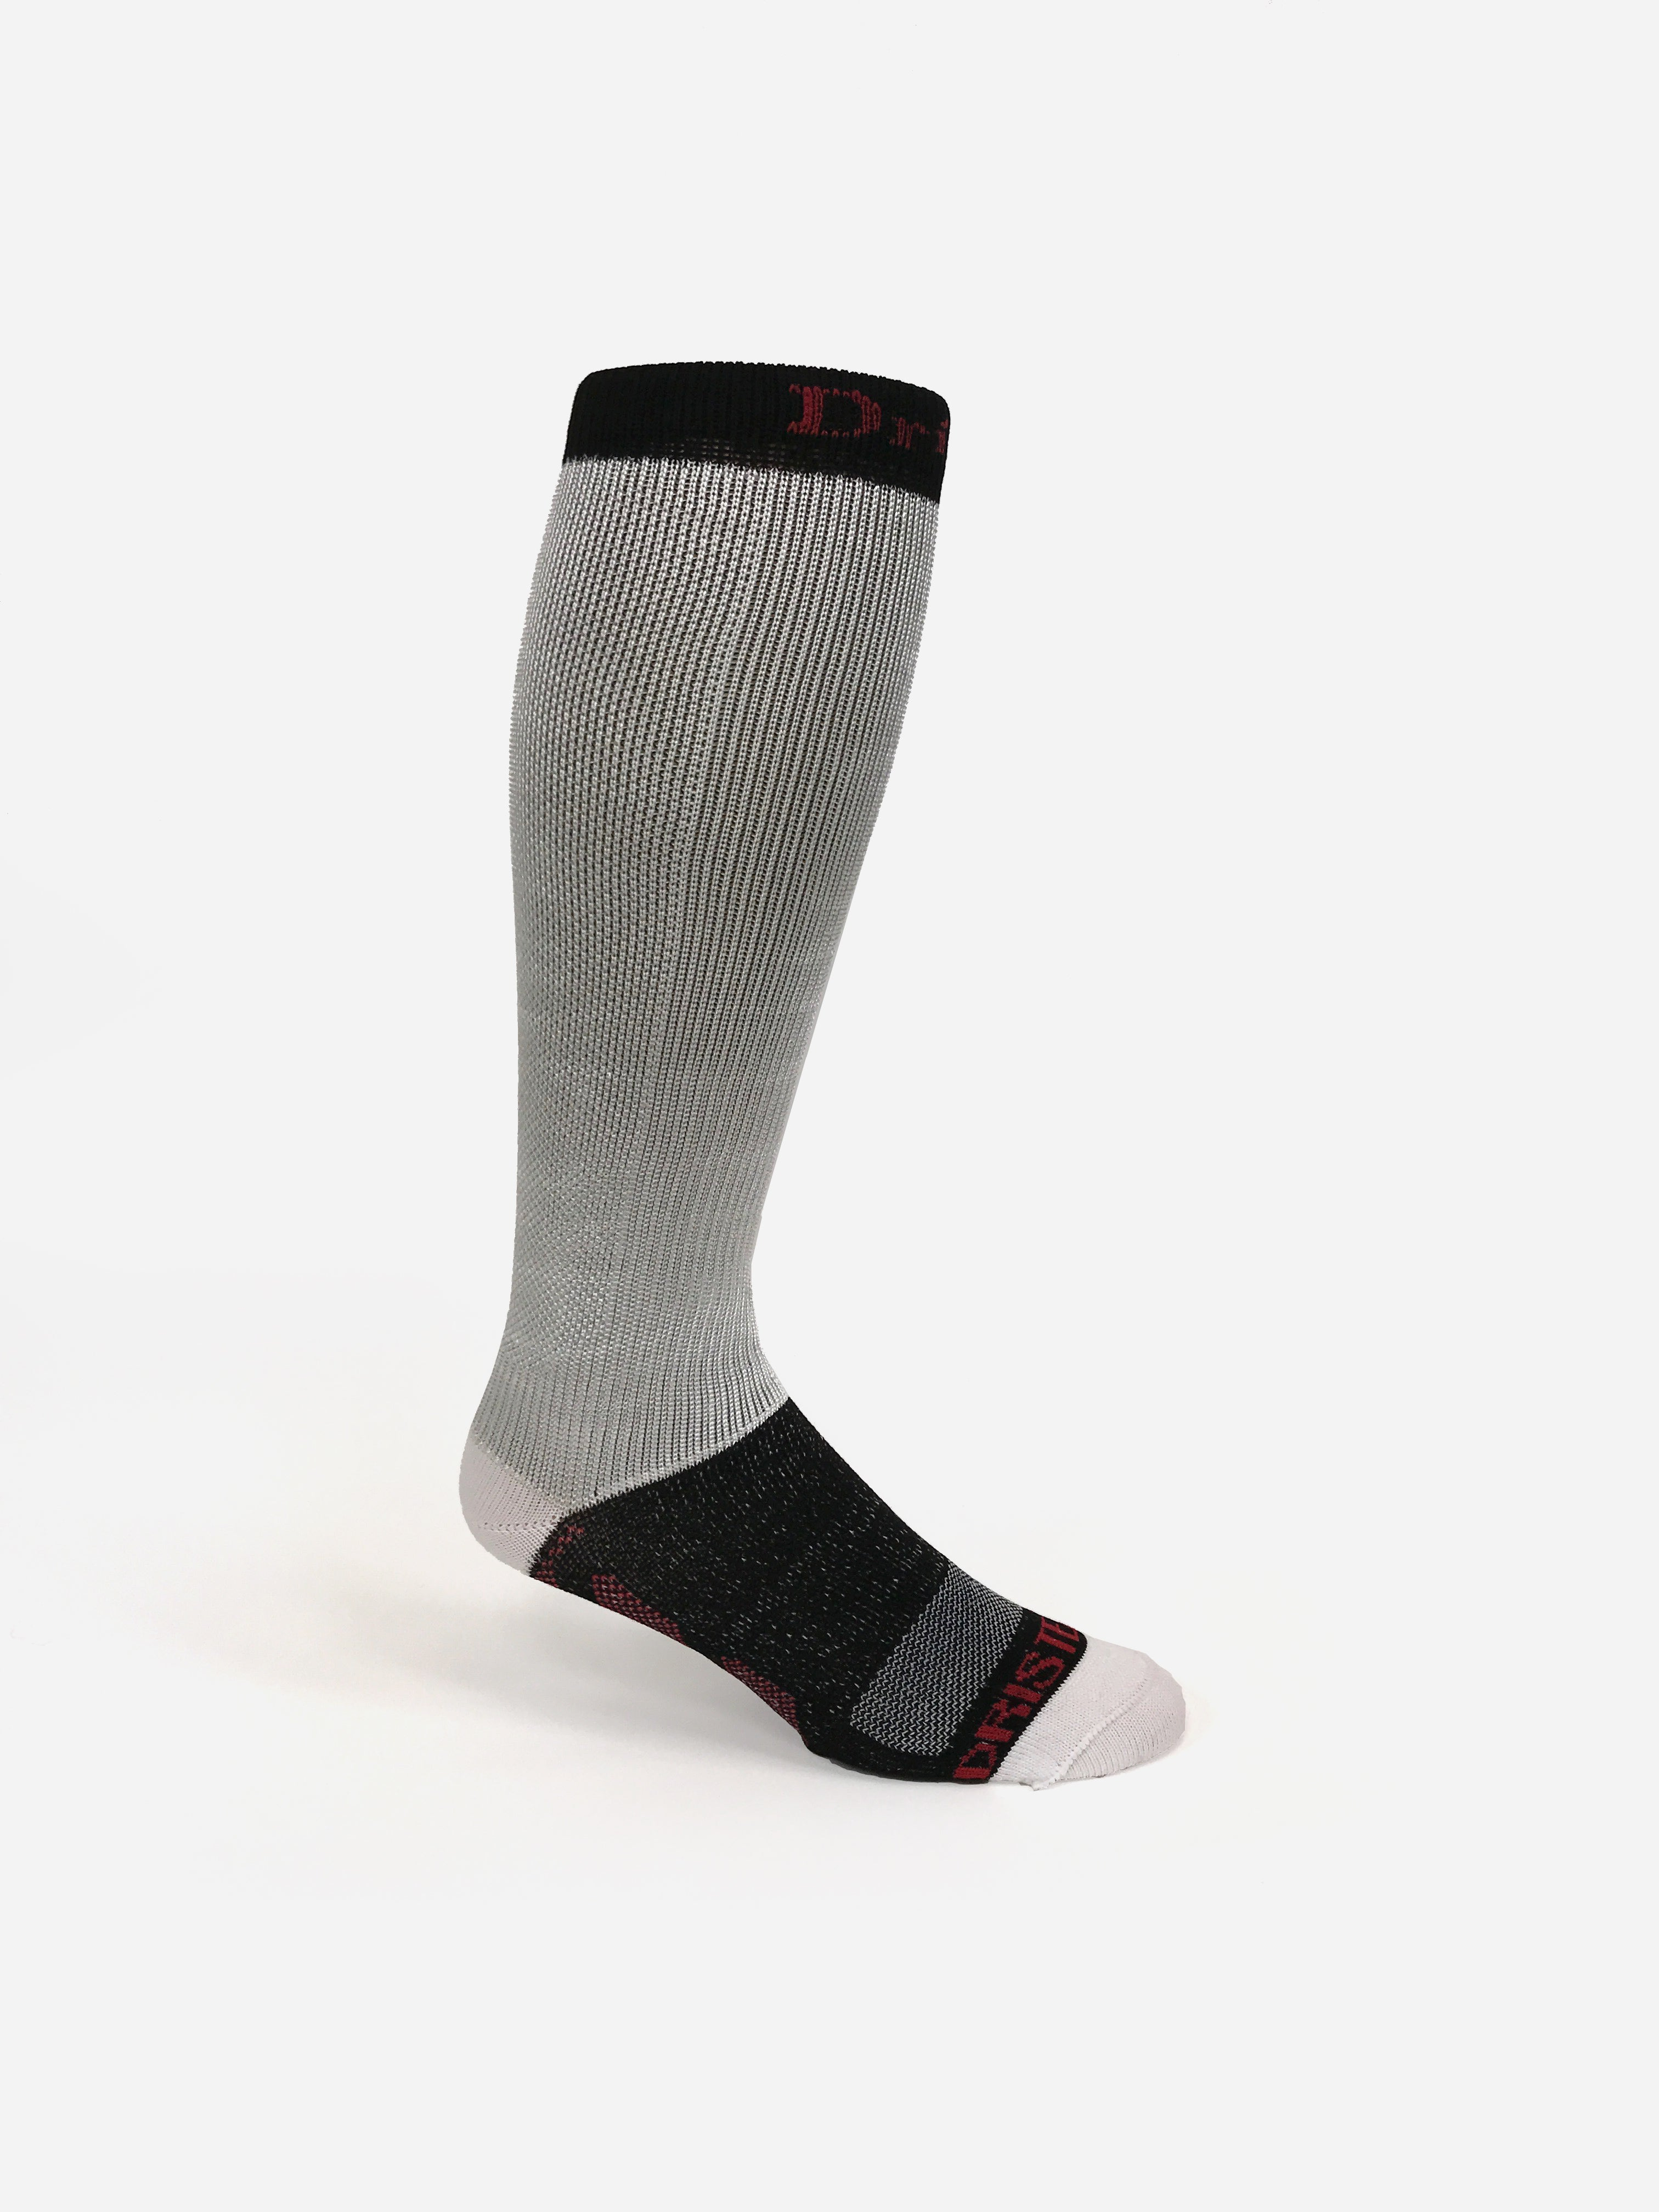 2PK Dristex Cut Resistant Compression Pro Hockey Sock. Dristex Cut Resistant hockey skate socks are designed specifically for hockey players that demand the best. The socks provide cut-resistant protection and the confidence to compete hard knowing they have that extra level of protection. HKYSOX cut-resistant hockey skate socks.